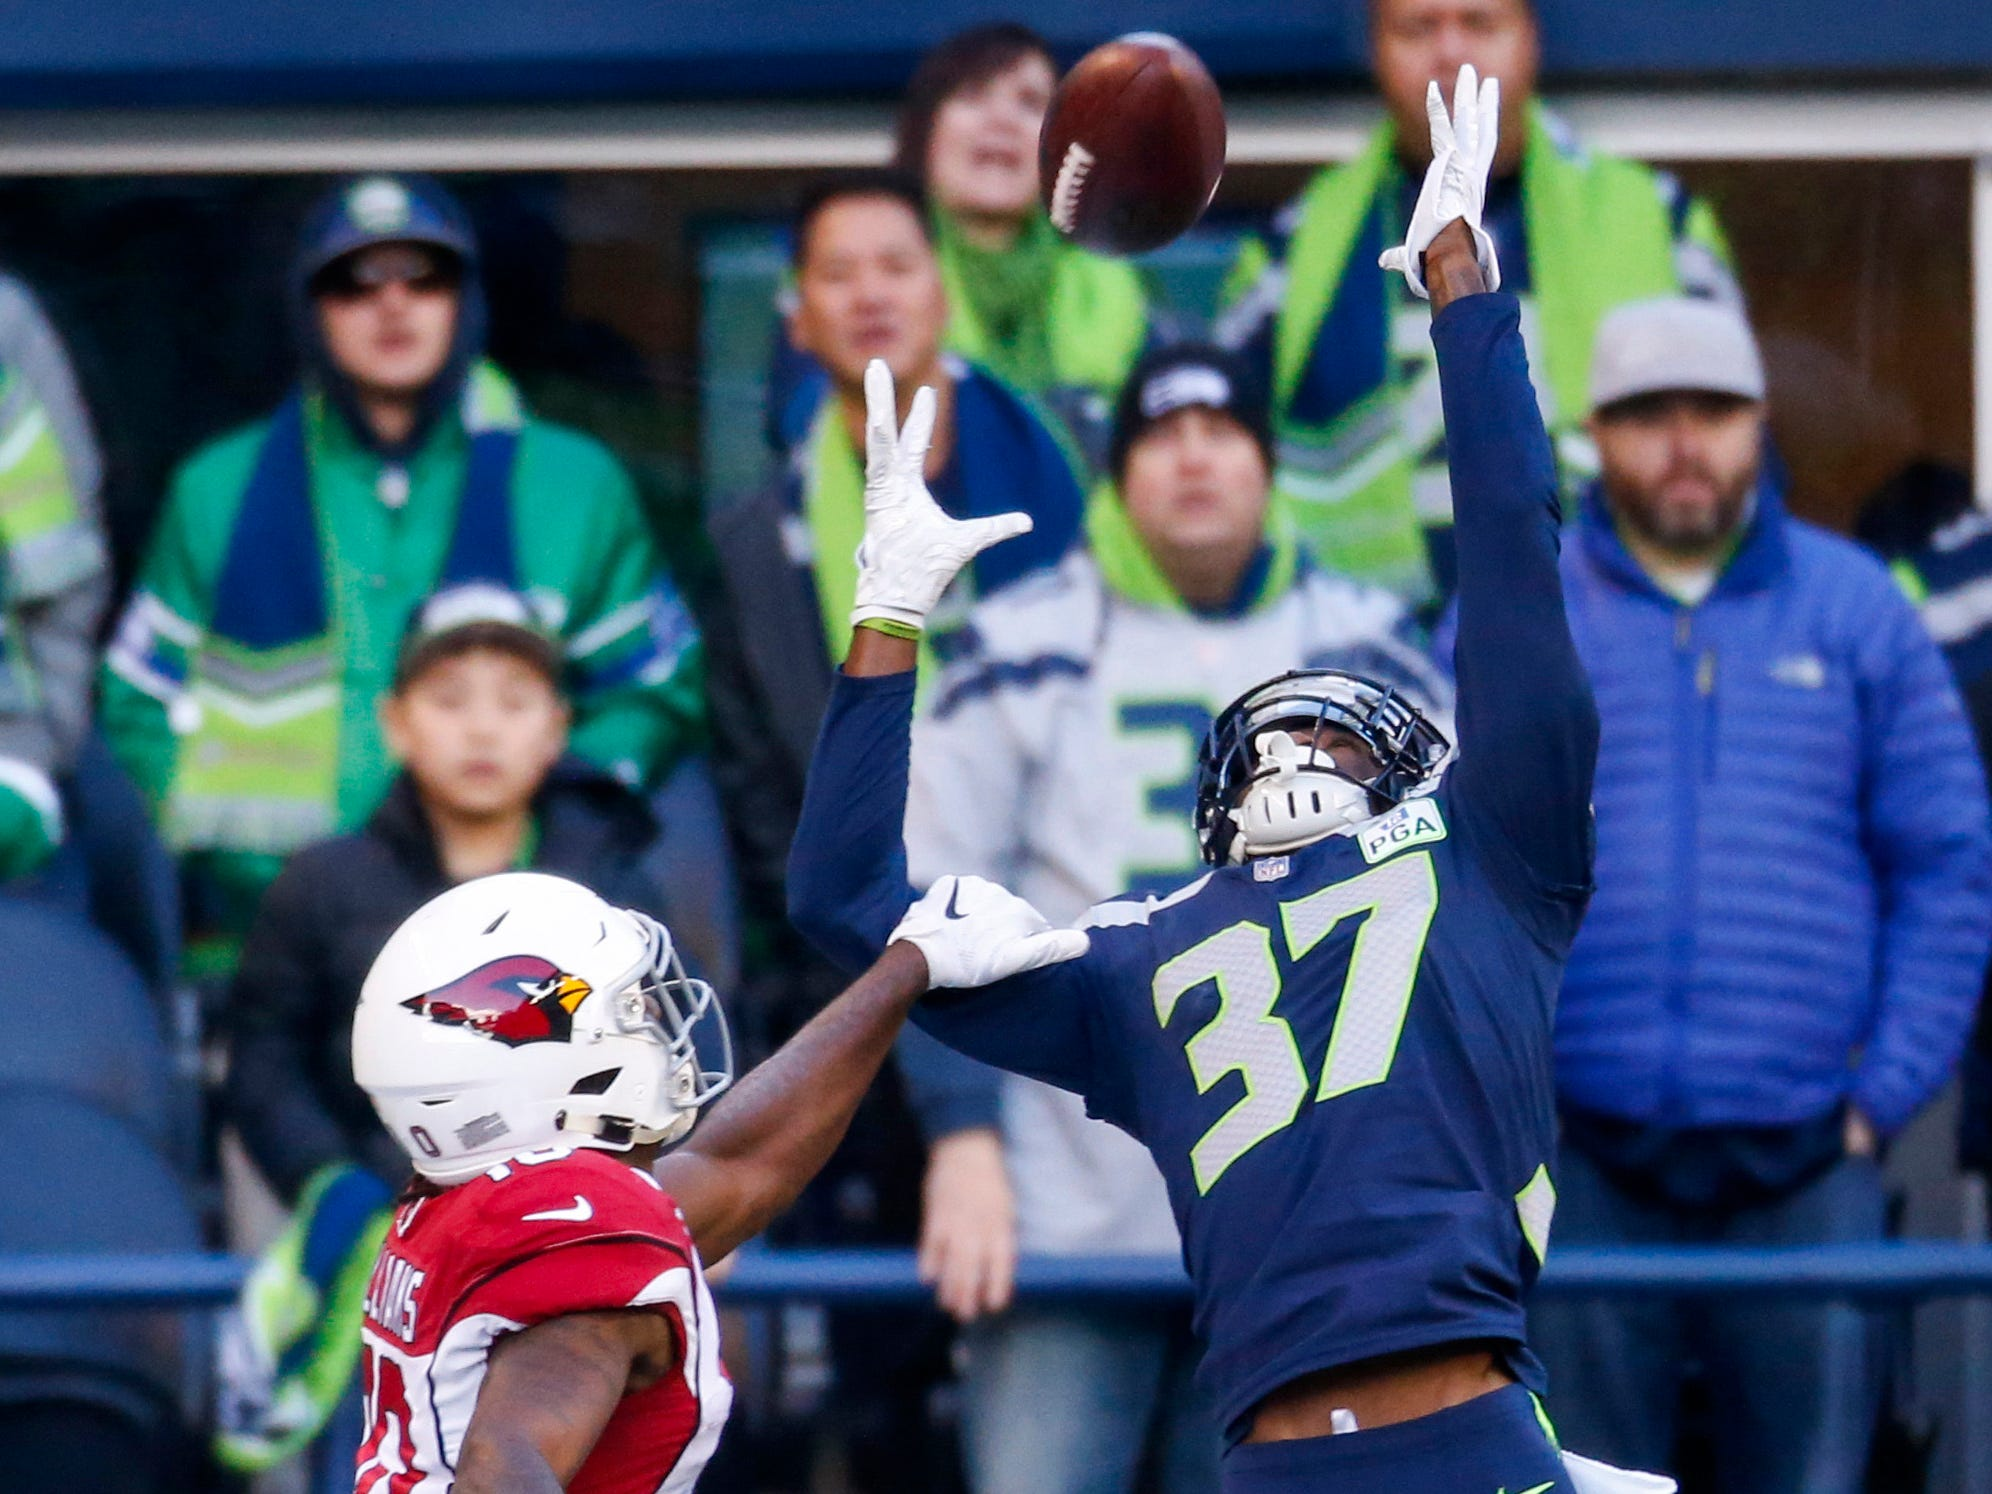 Dec 30, 2018; Seattle, WA, USA; Seattle Seahawks cornerback Tre Flowers (37) defends a pass intended for Arizona Cardinals wide receiver Chad Williams (10) during the first quarter at CenturyLink Field. Mandatory Credit: Joe Nicholson-USA TODAY Sports